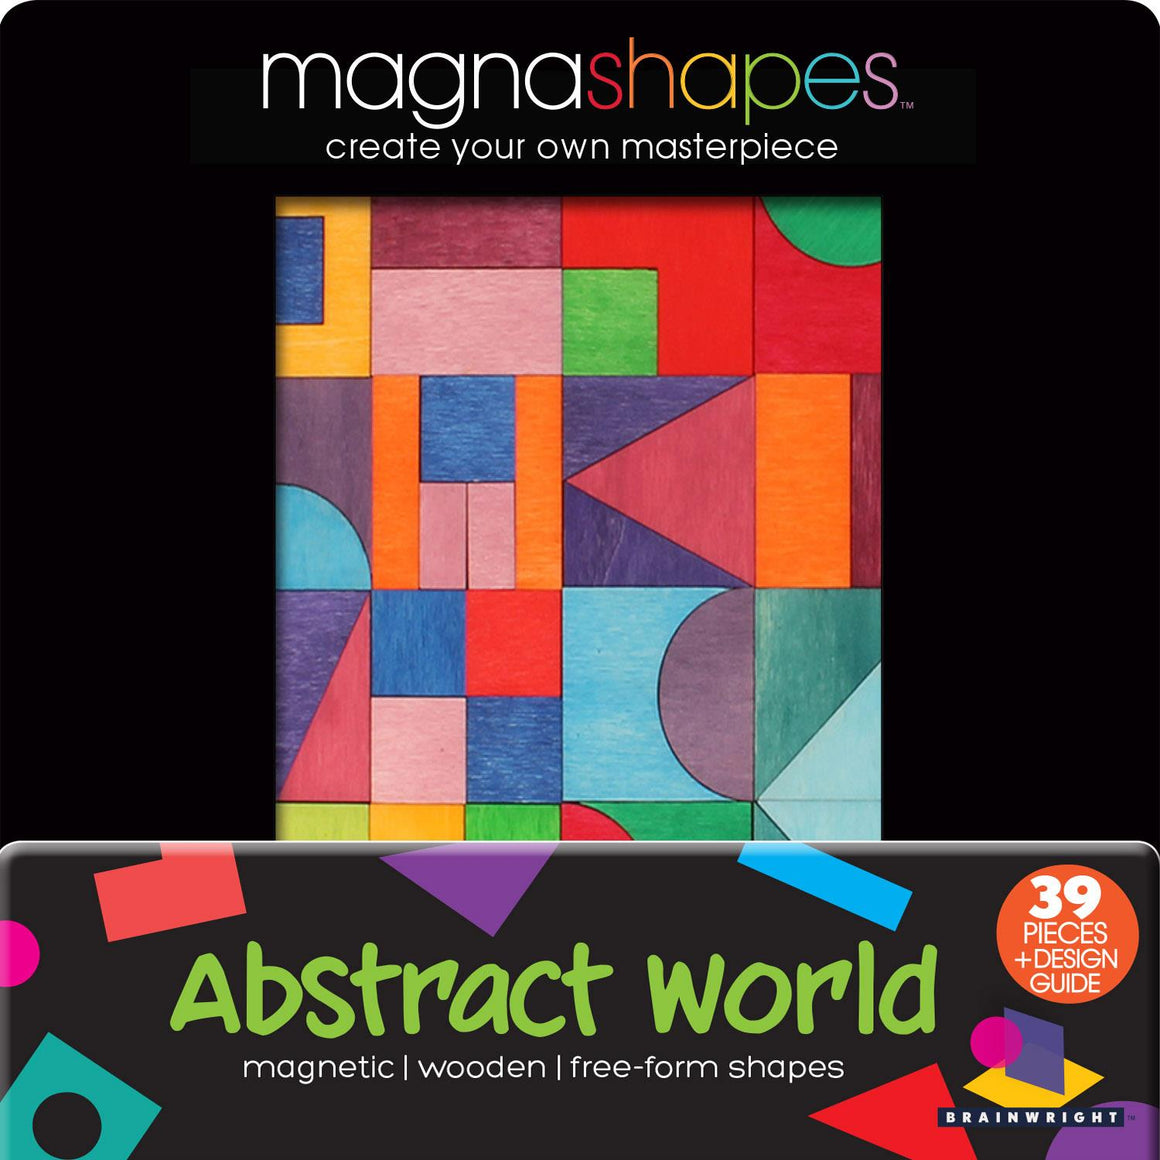 Abstract World | Magnashapes | The Gifted Type